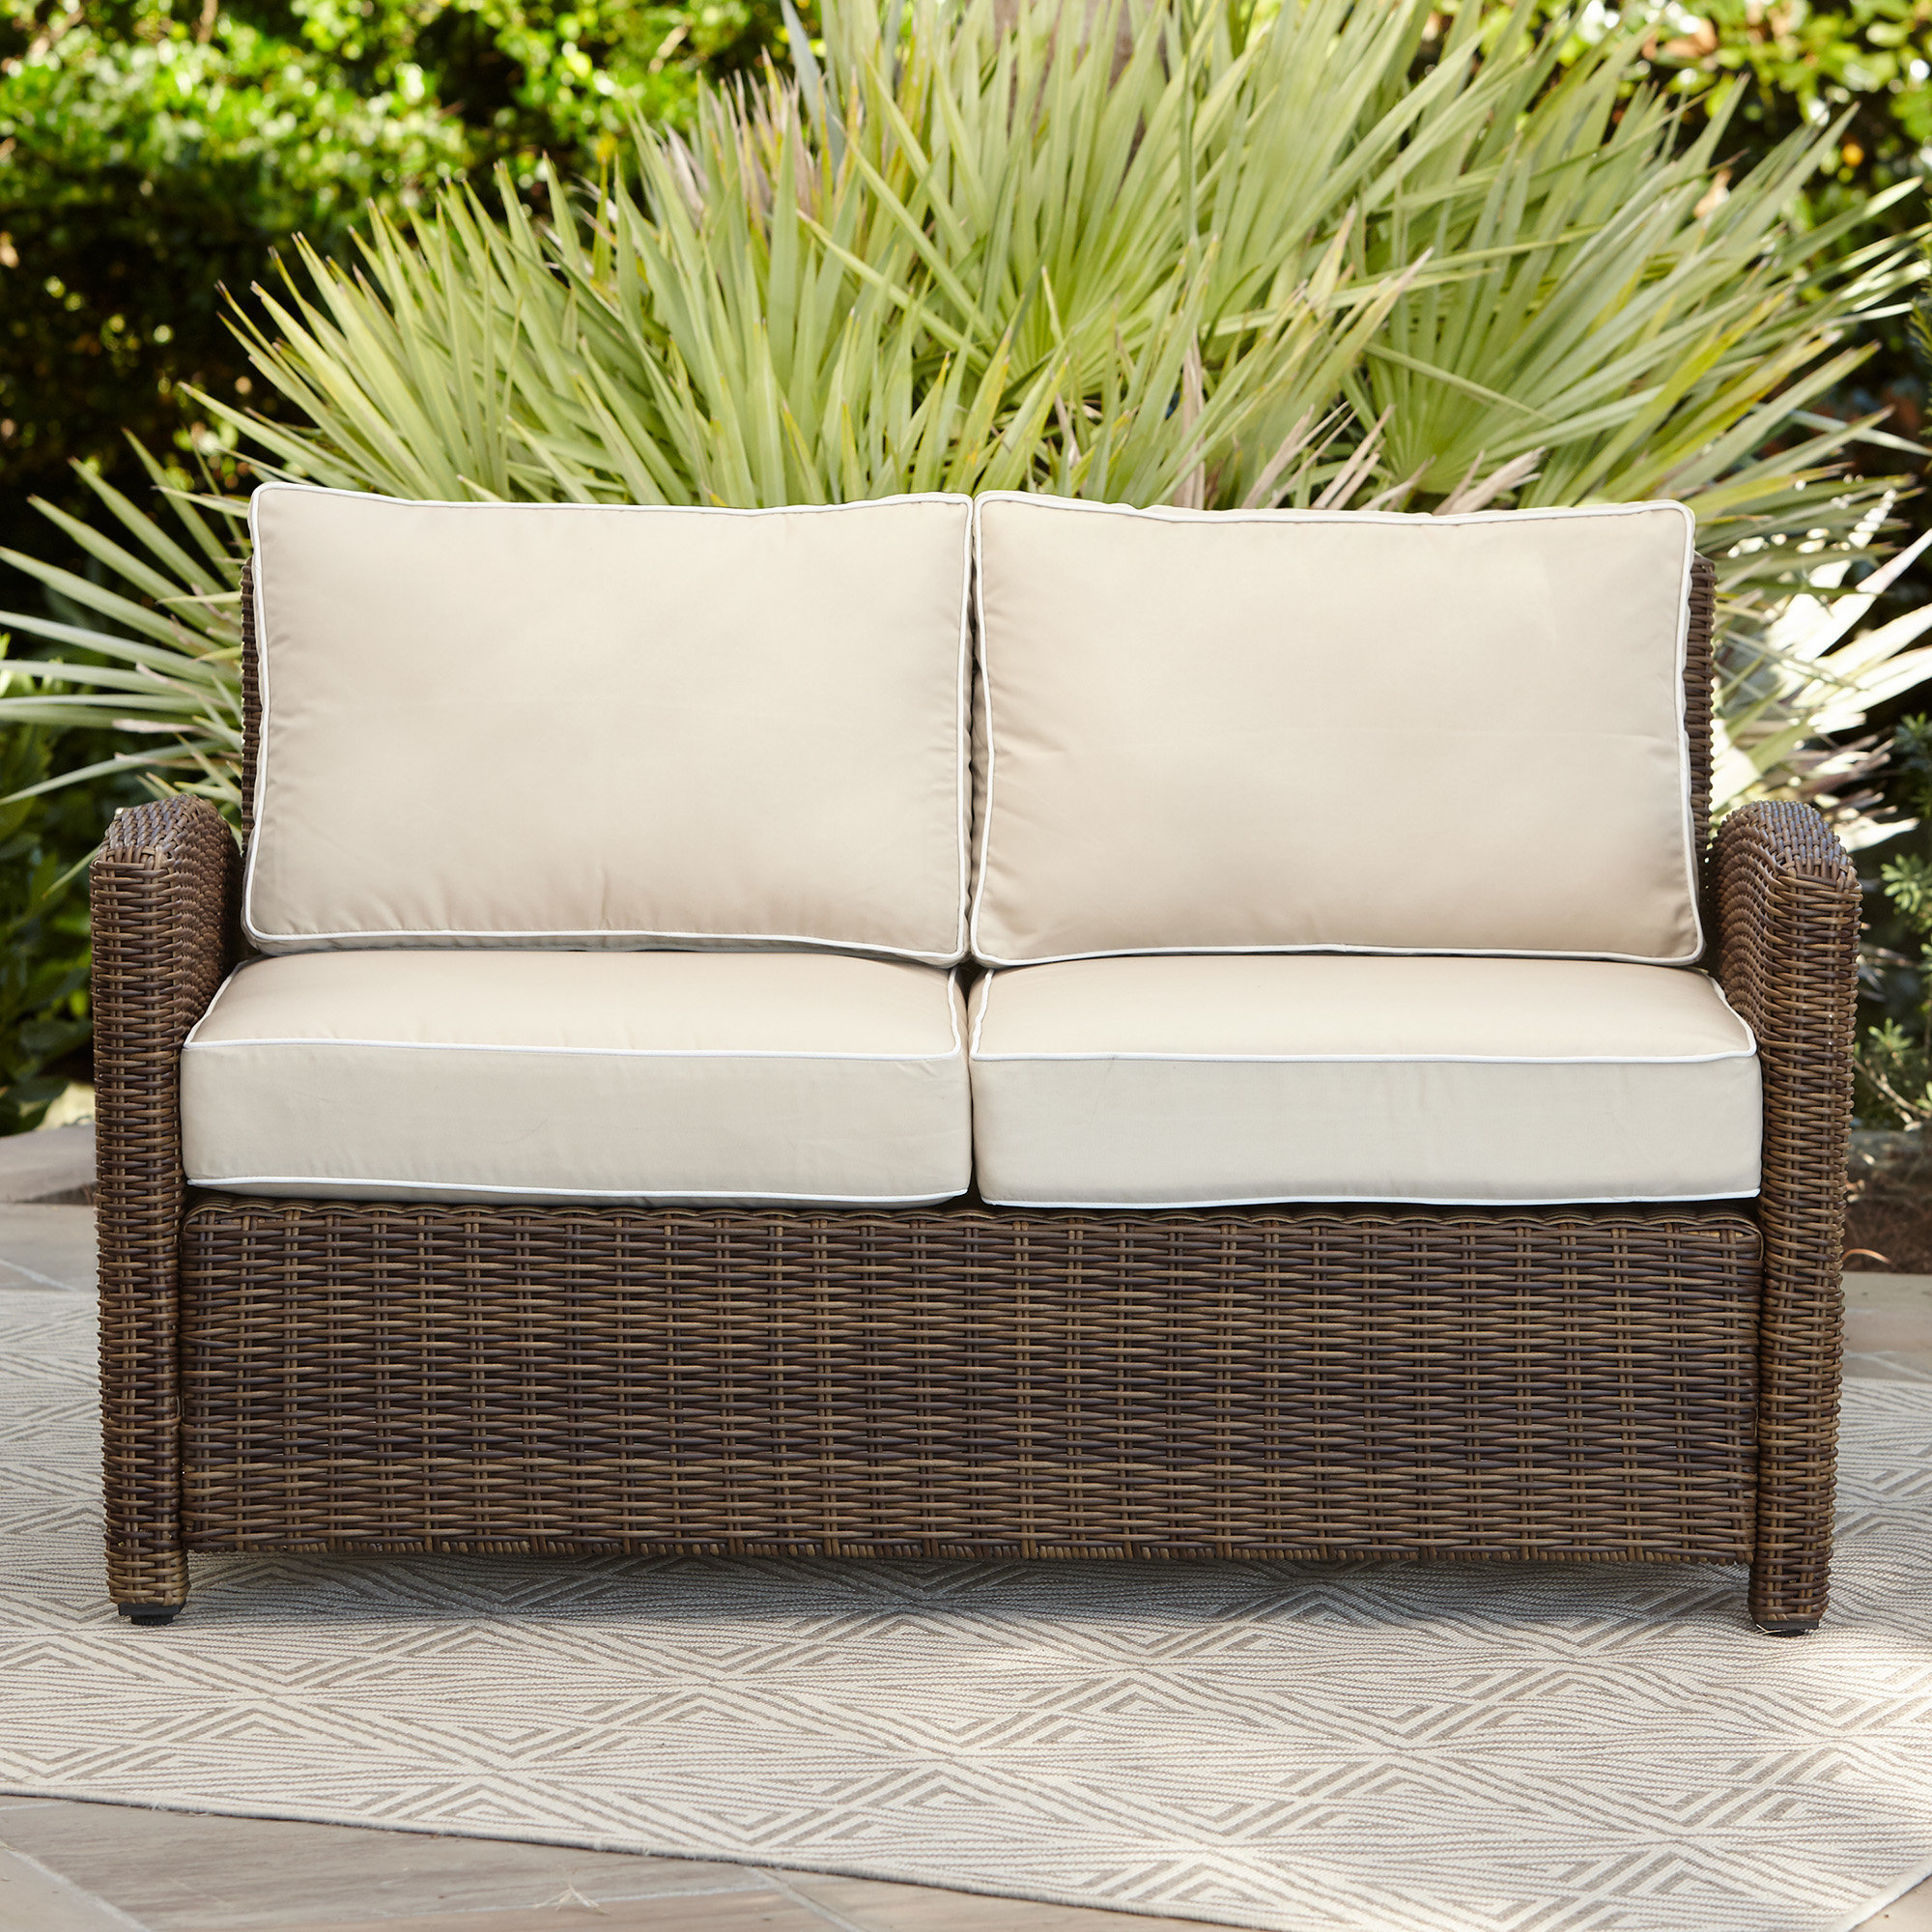 Wayfair With Regard To Alburg Loveseats With Cushions (View 9 of 25)